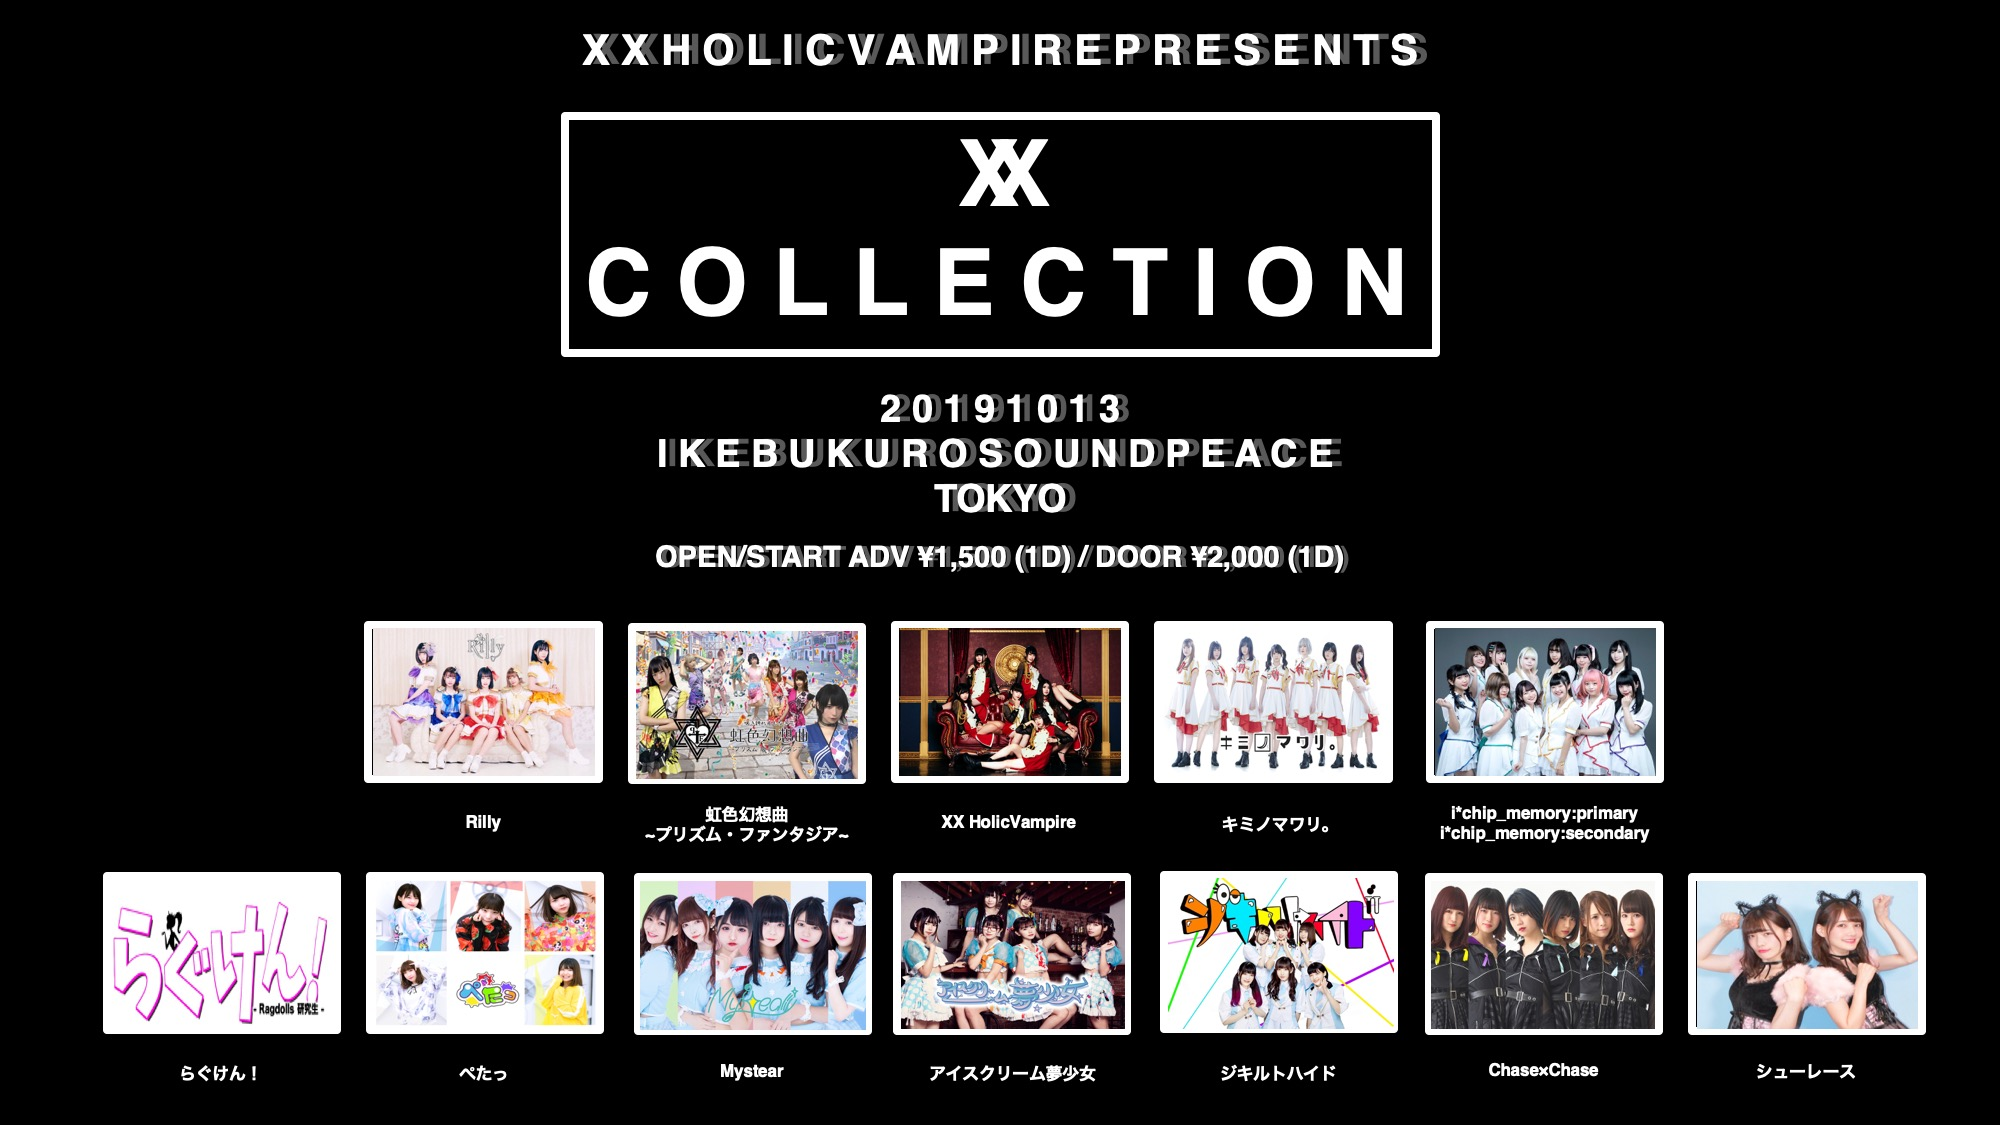 XX Collection-キスホリ主催